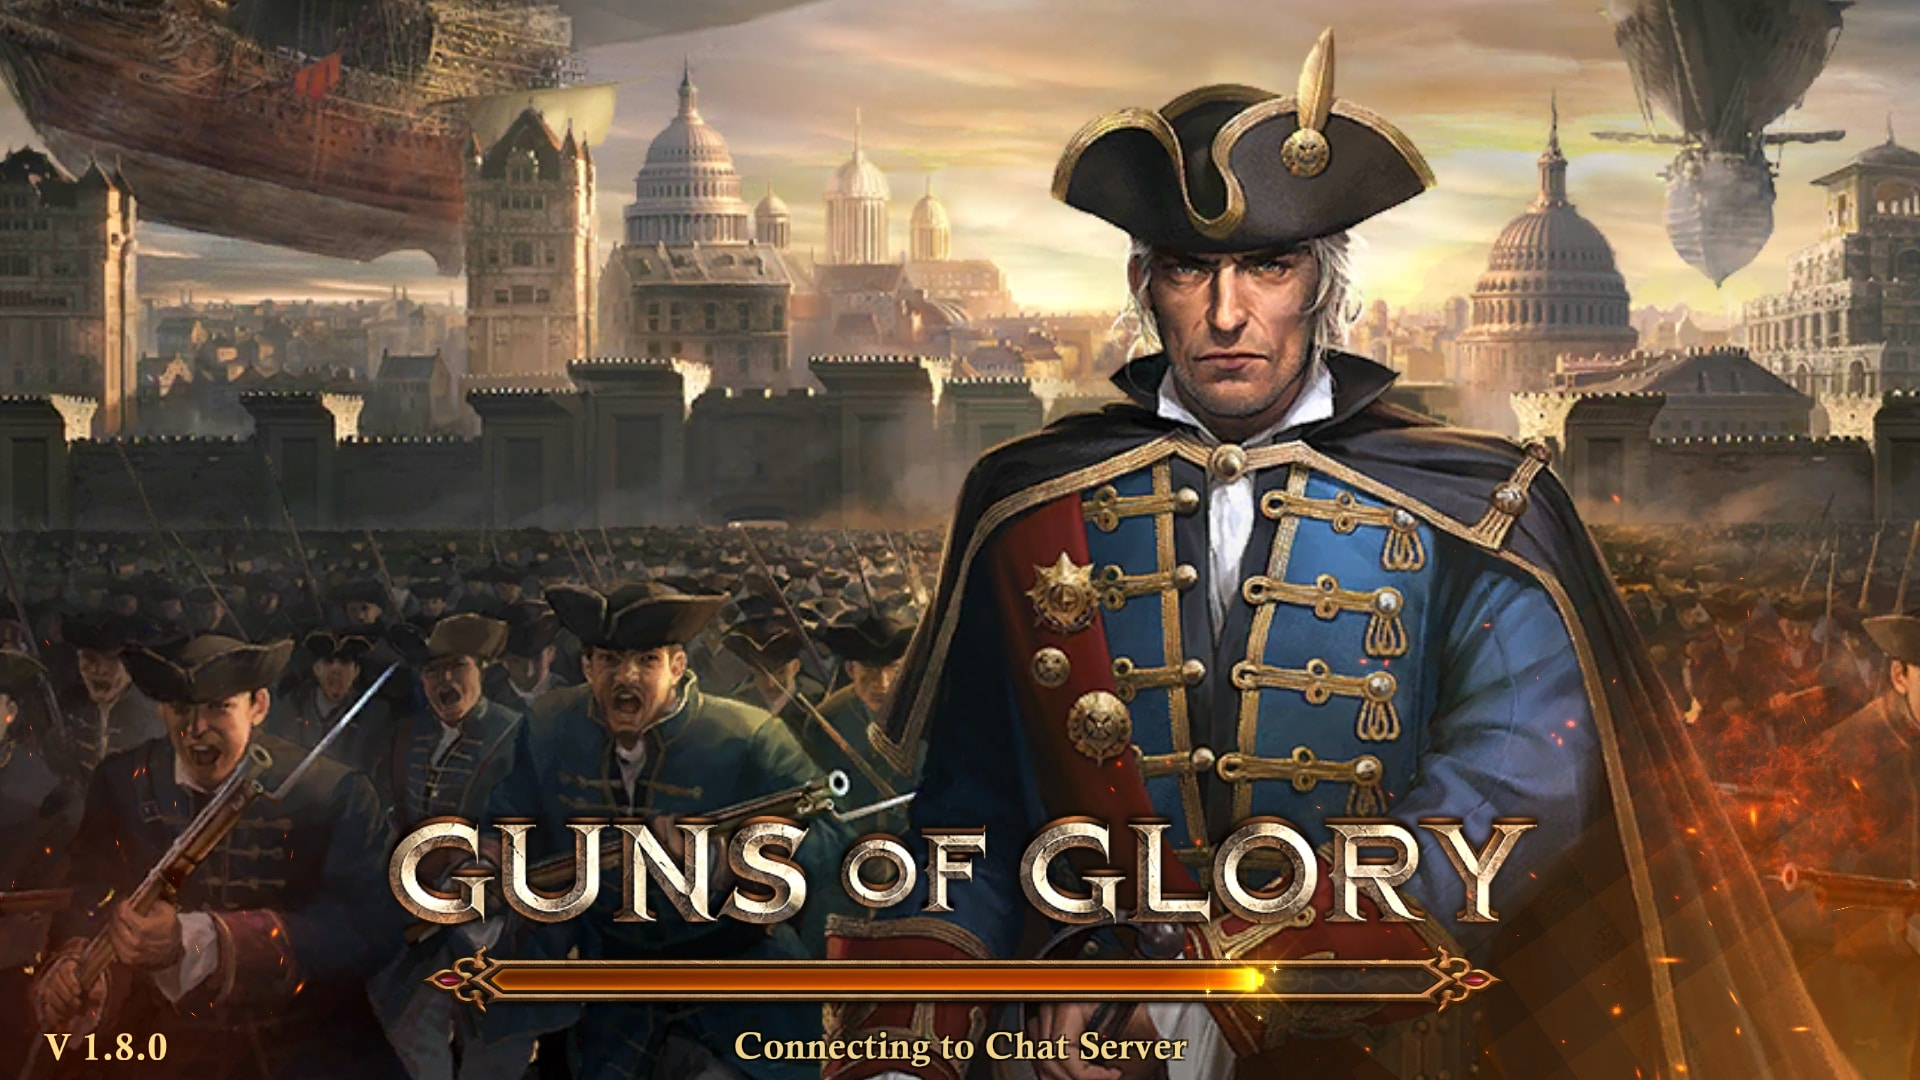 Download Guns of Glory APK- For Android and iOS 8